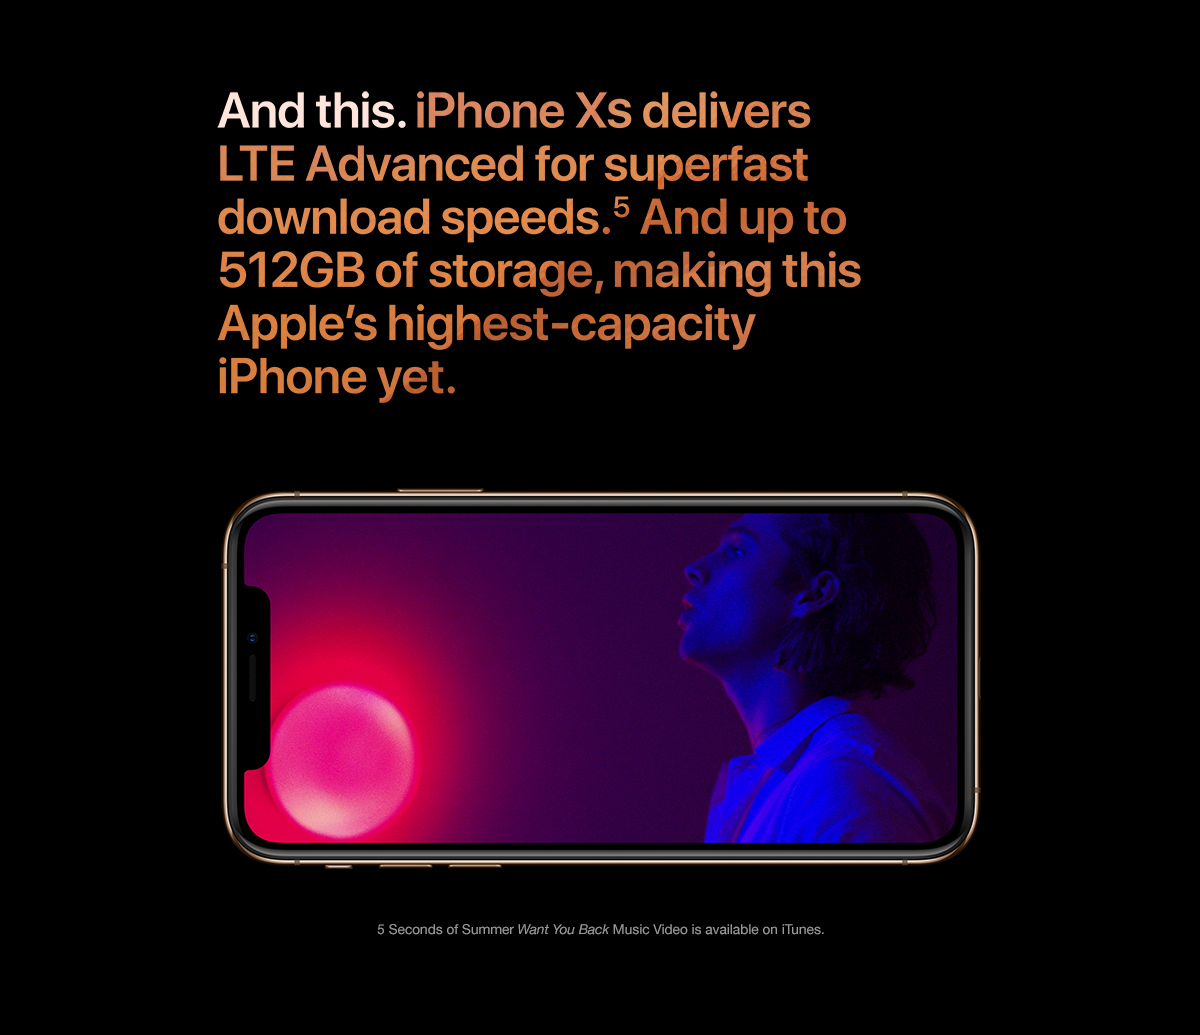 Best Service Provider For Iphone